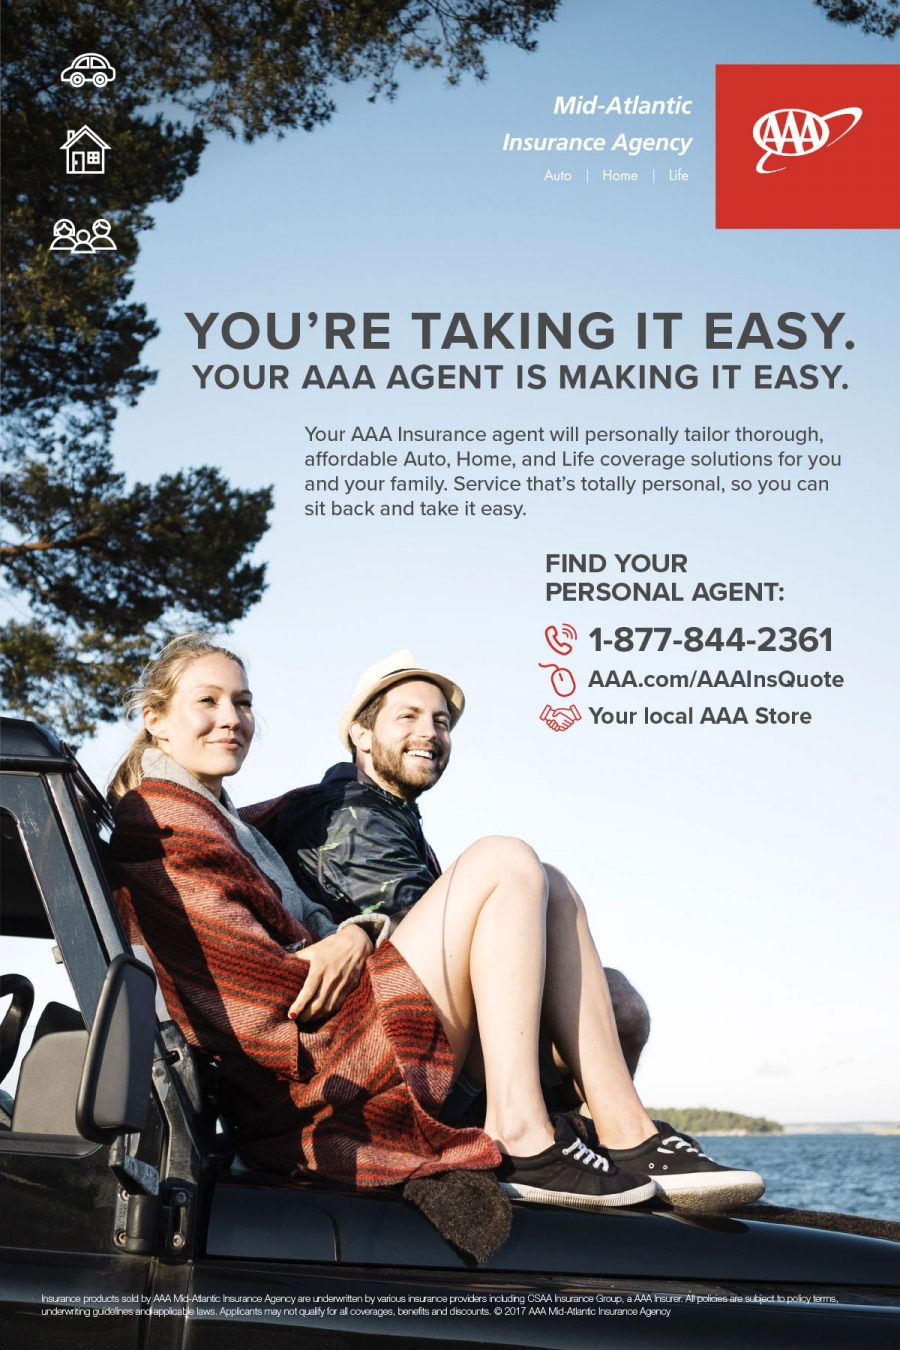 AAA Insurance Marketing